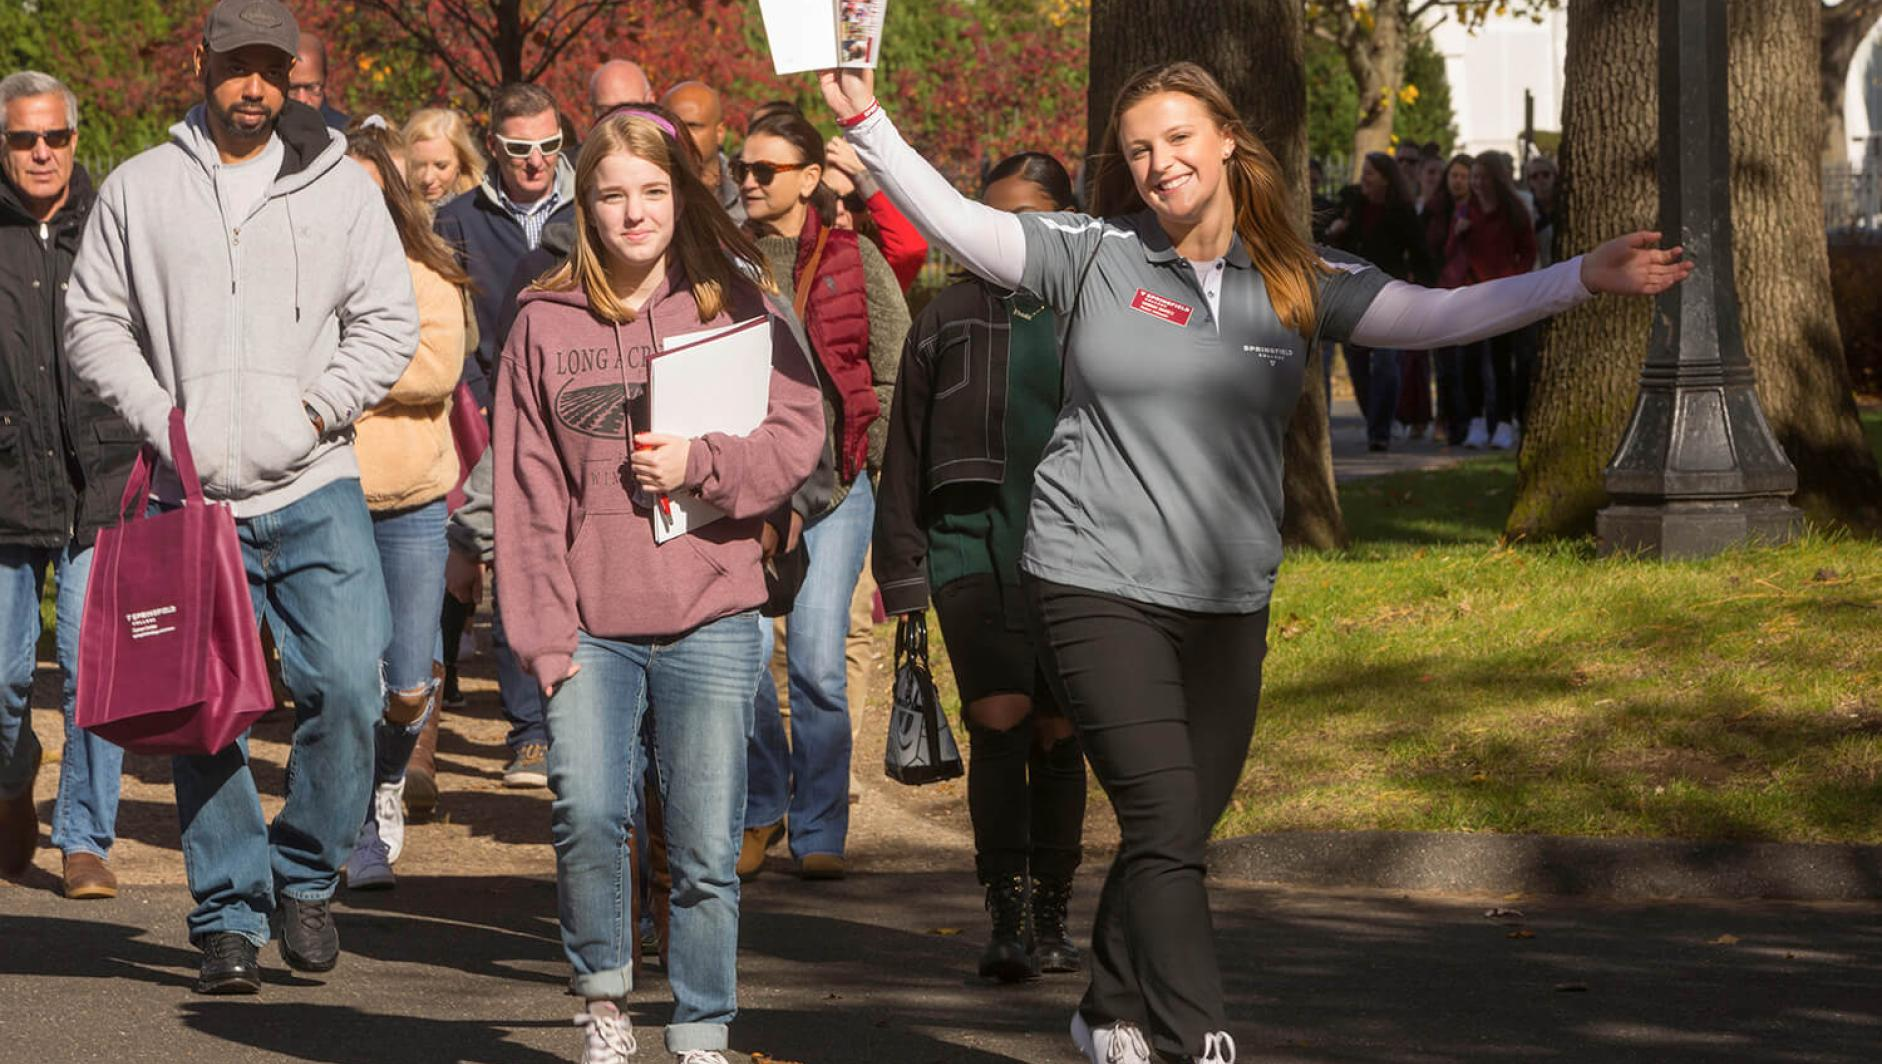 A Springfield College Student Ambassador leads a tour around campus